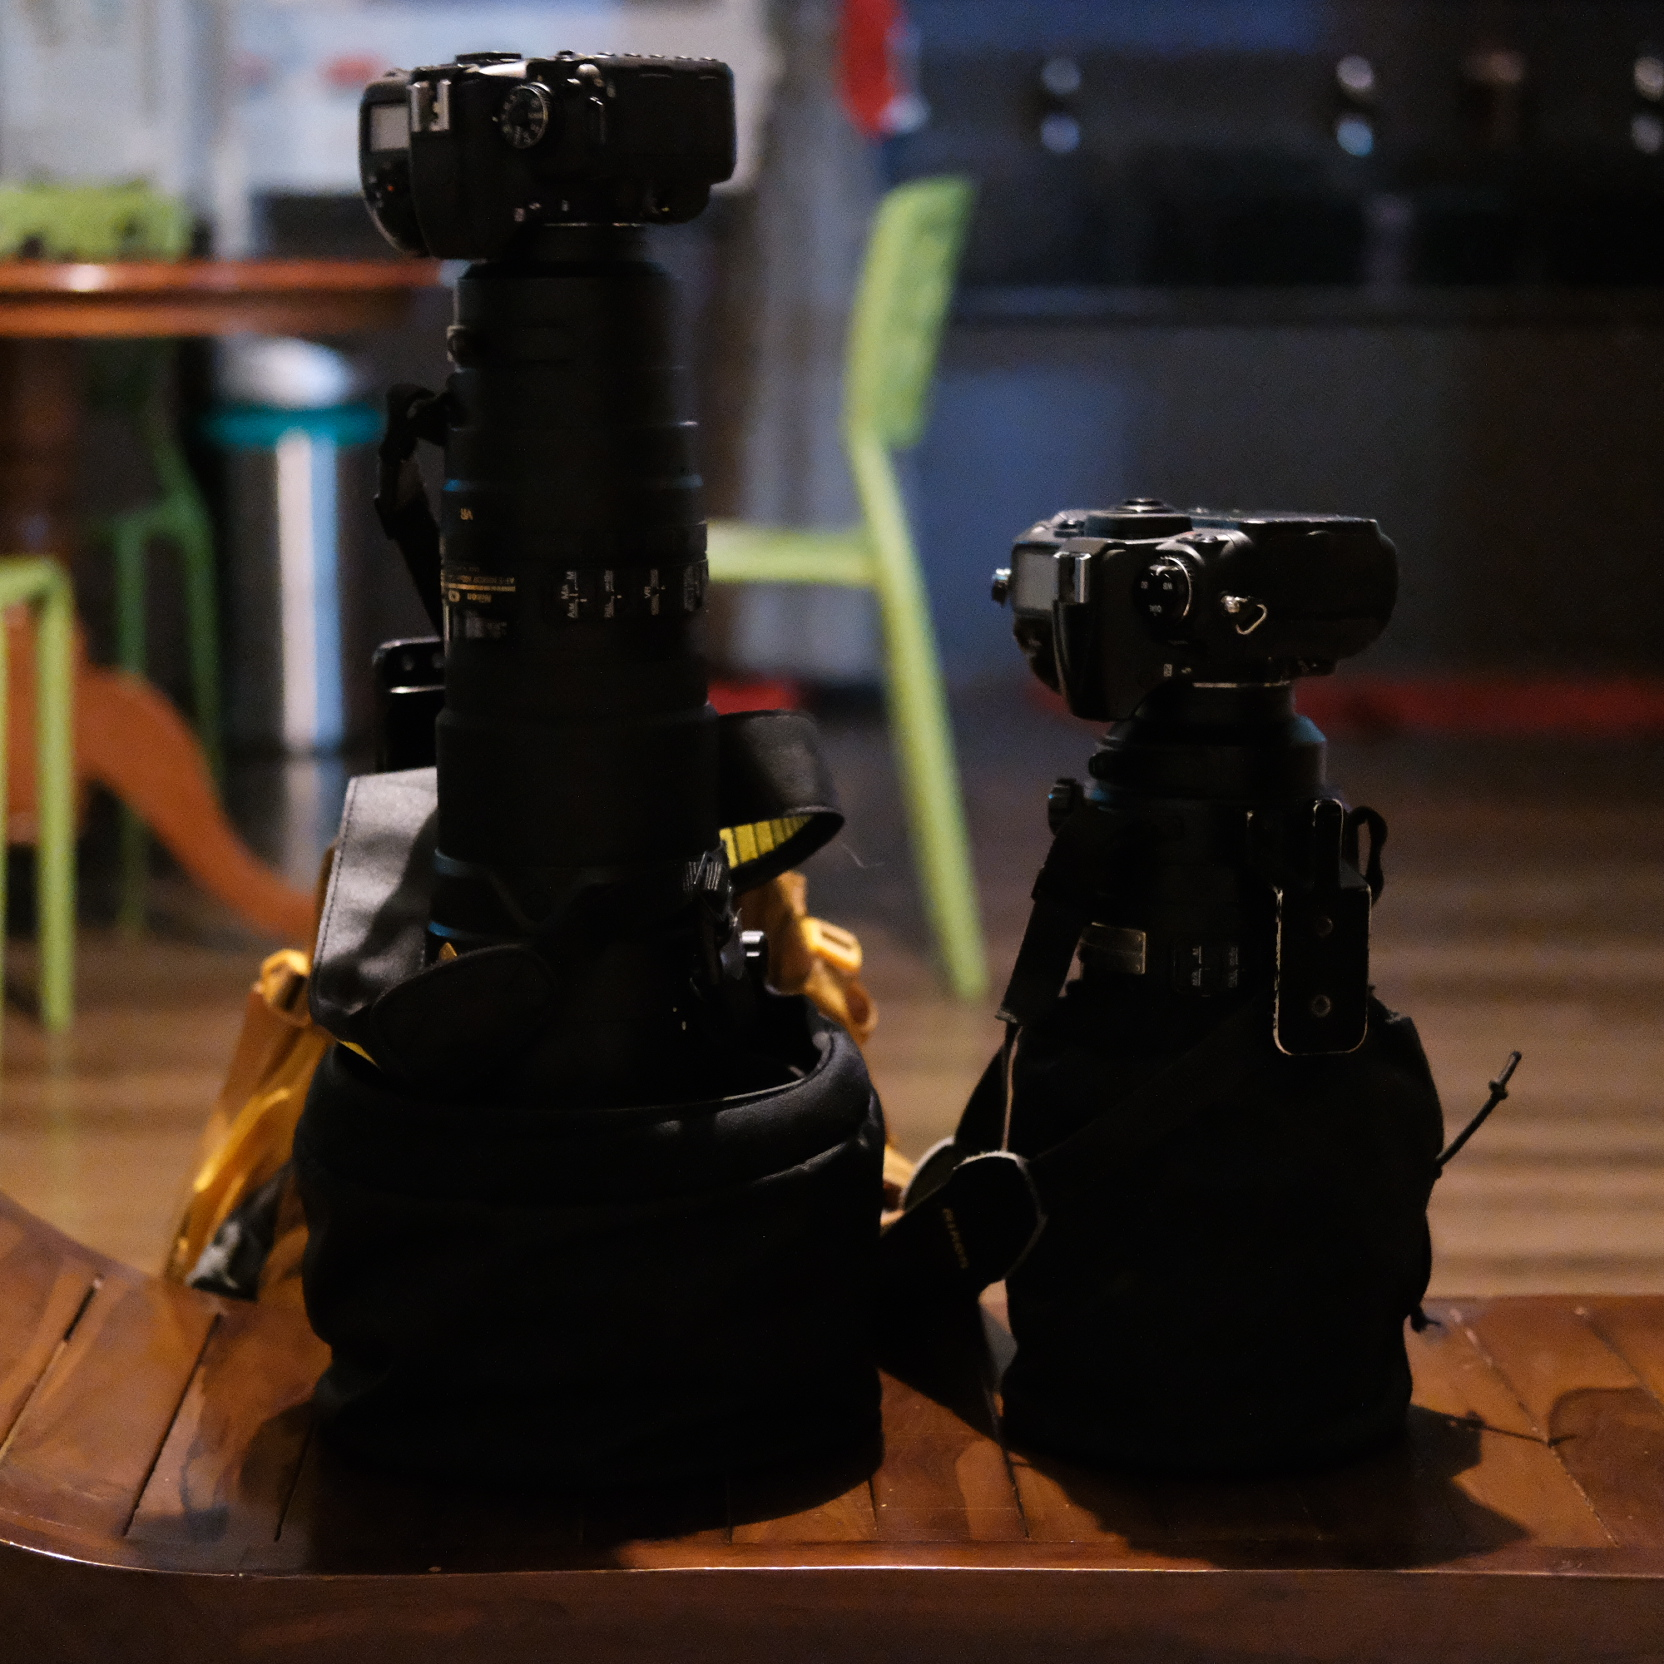 That's the 300mm f/2.8 beast next to the real beast.